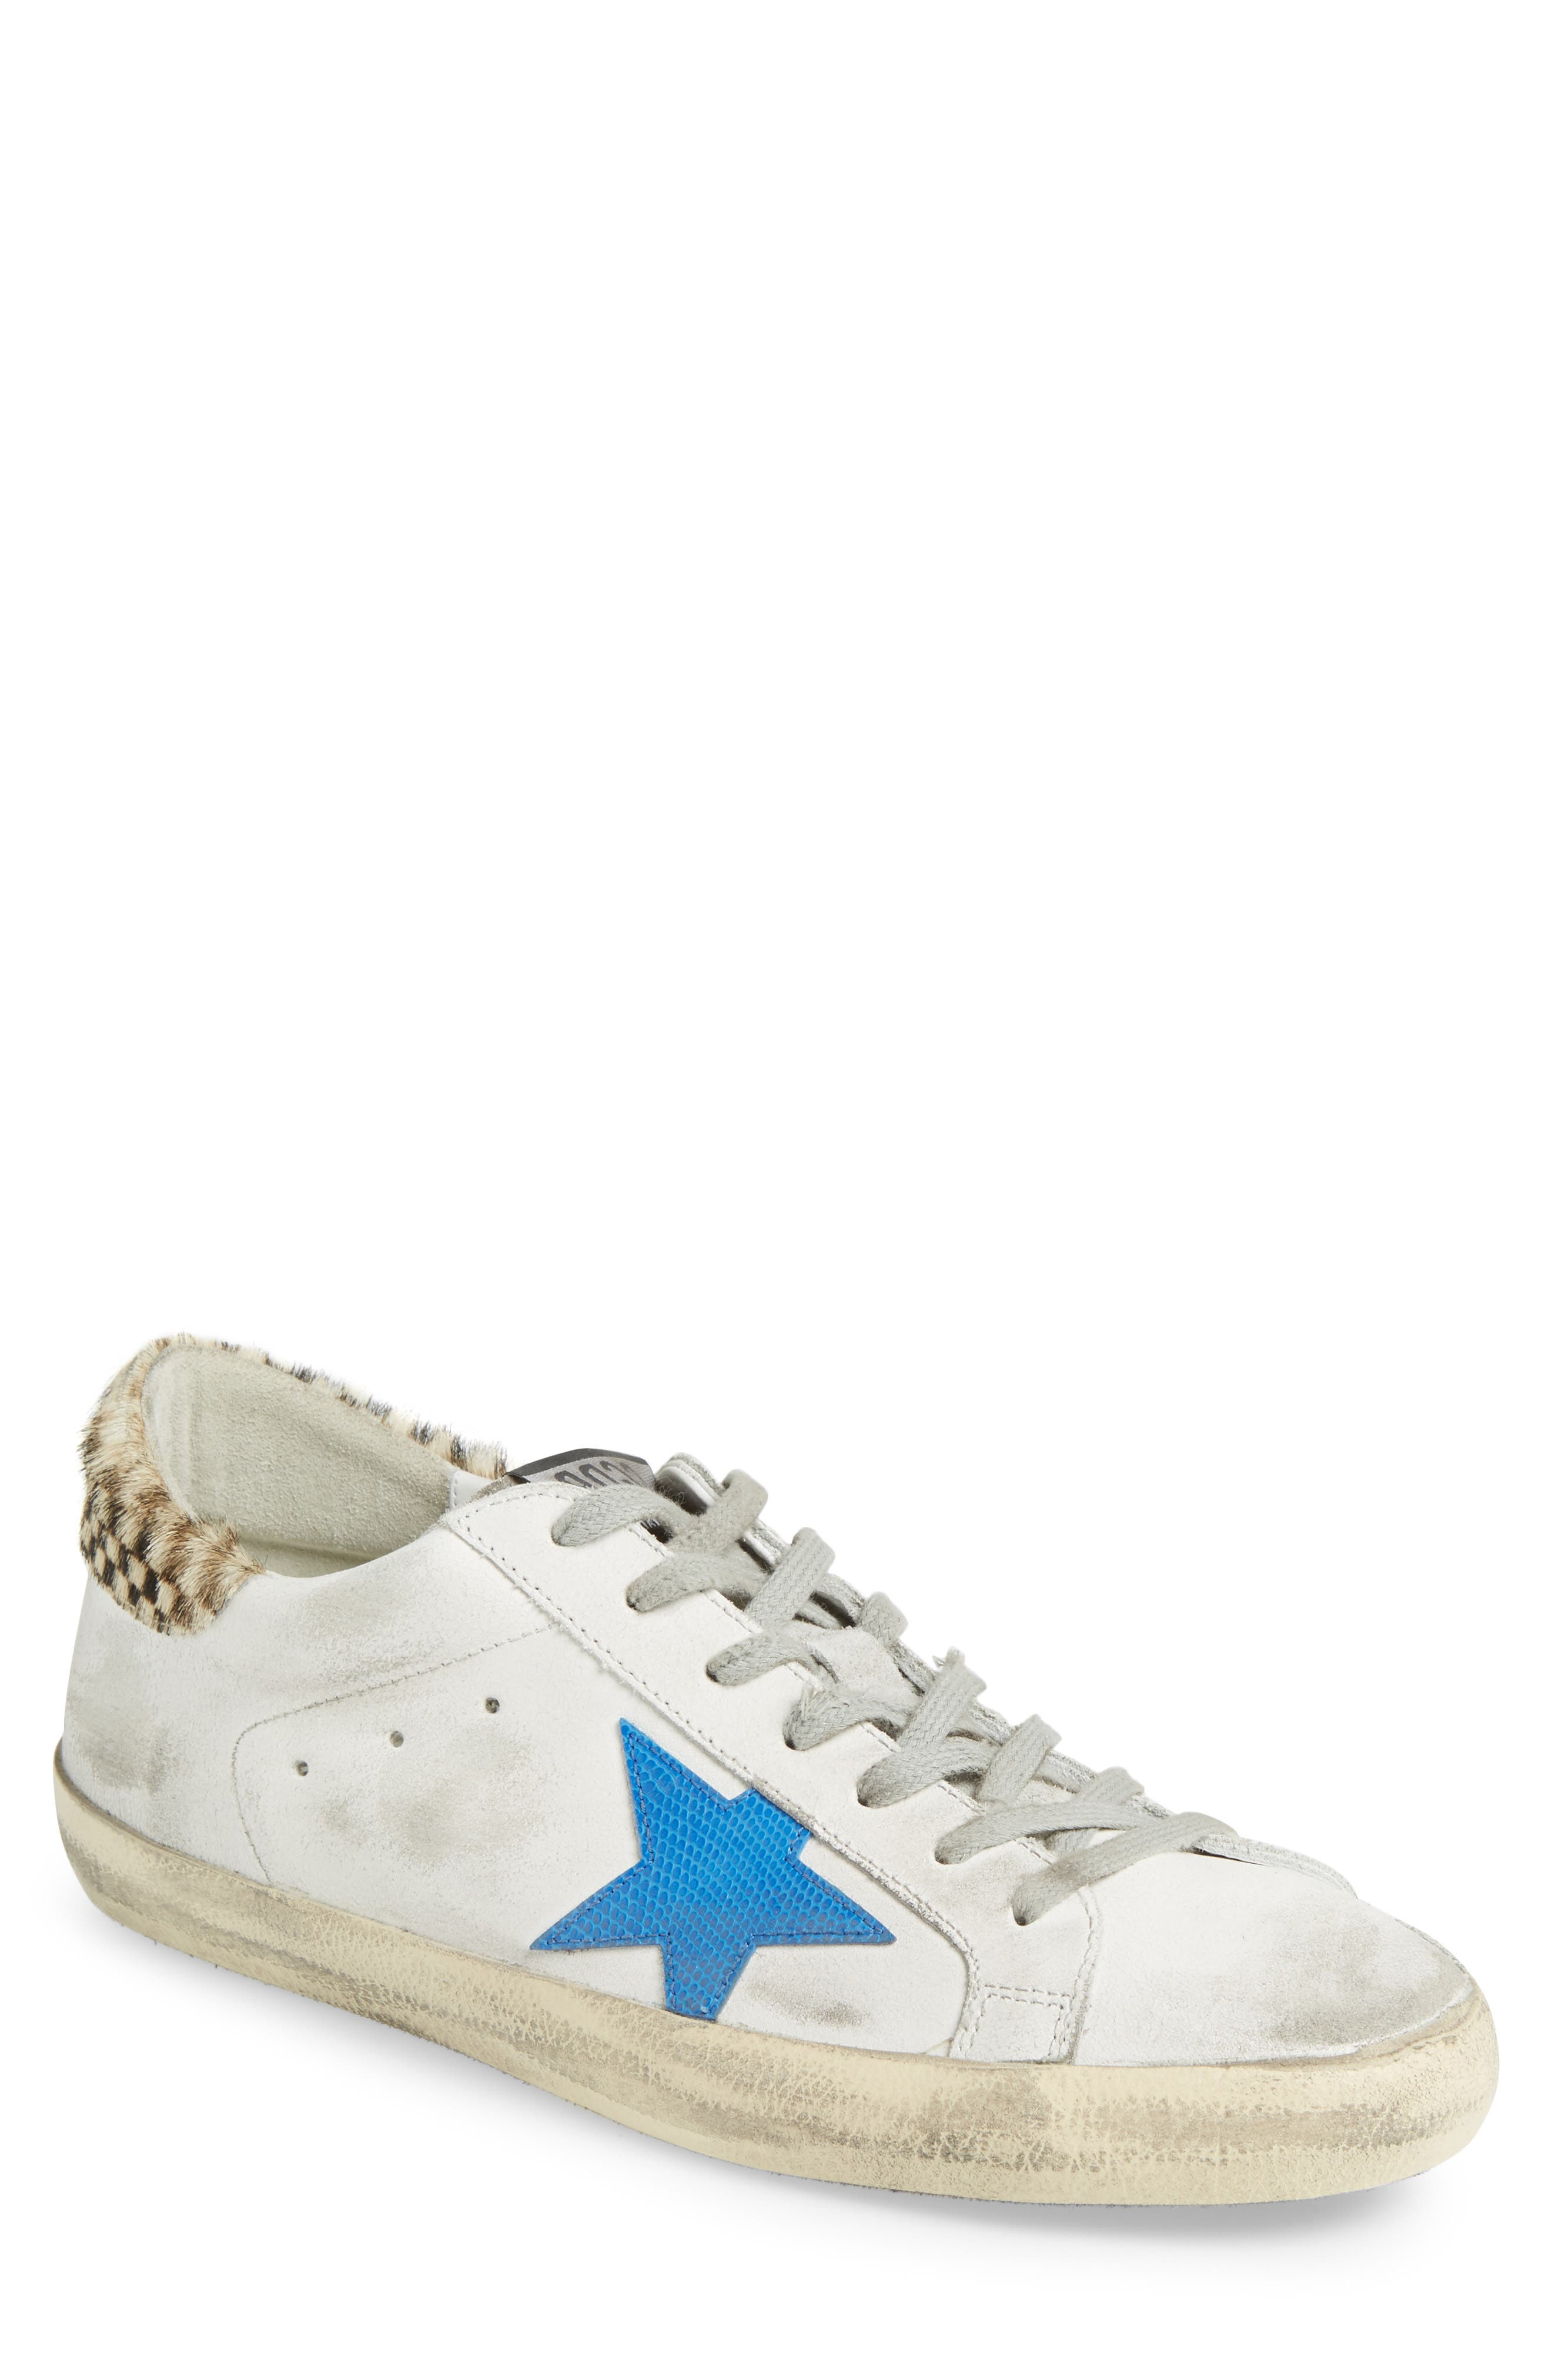 Superstar Sneaker with Genuine Calf Hair Trim,                         Main,                         color, White/ Check/ Lizard Print